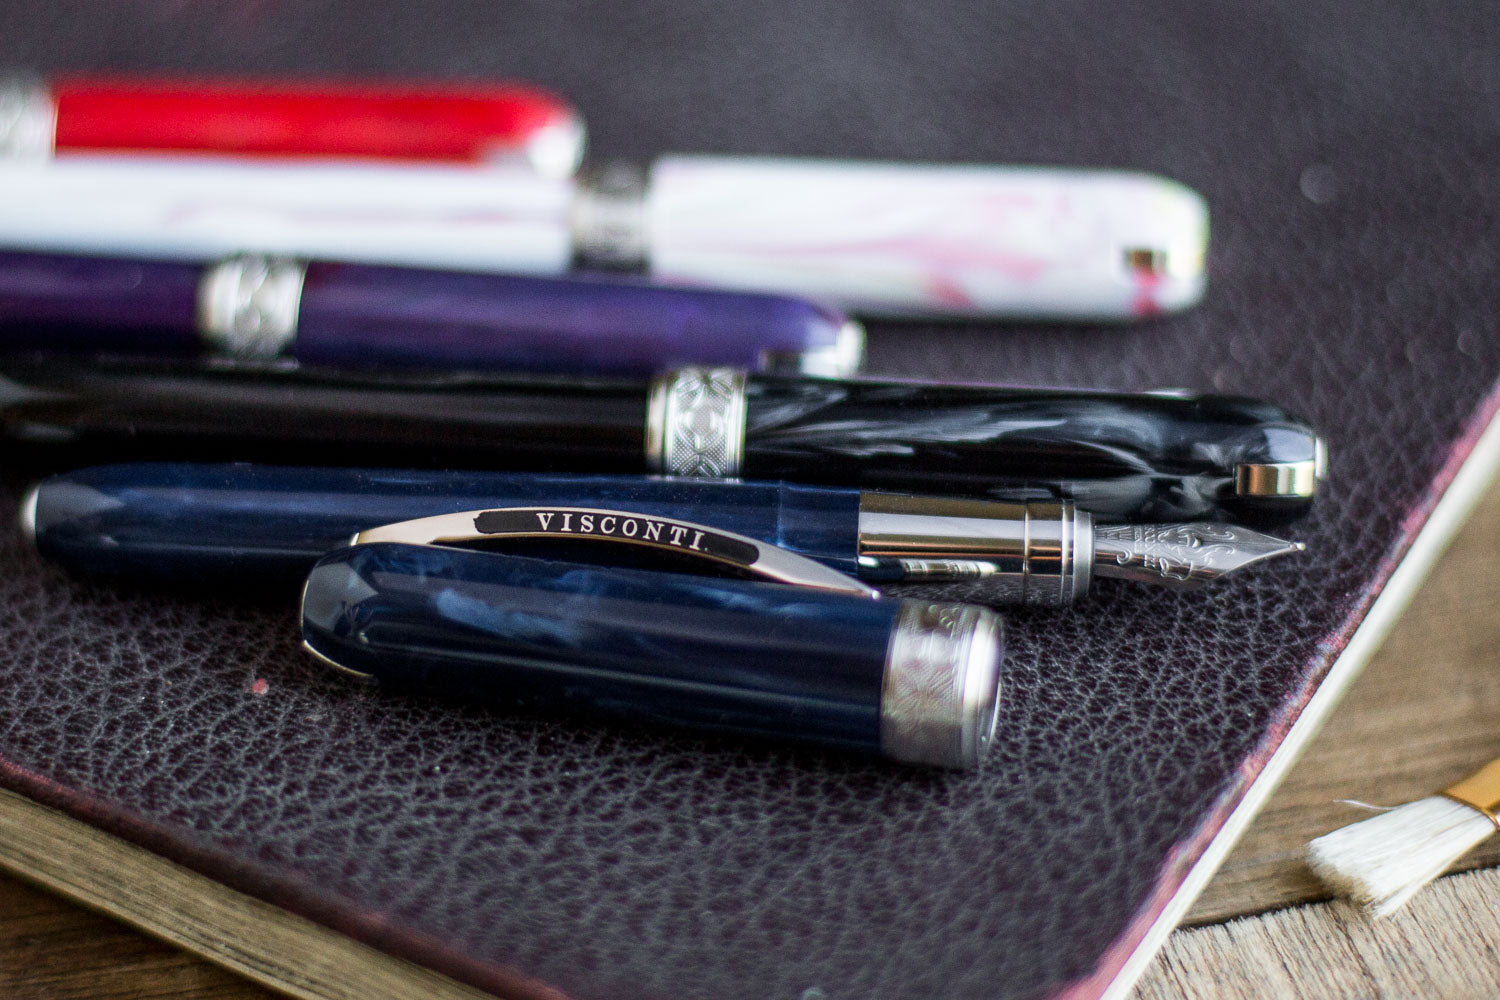 Visconti Rembrandt Fountain Pen - Blue